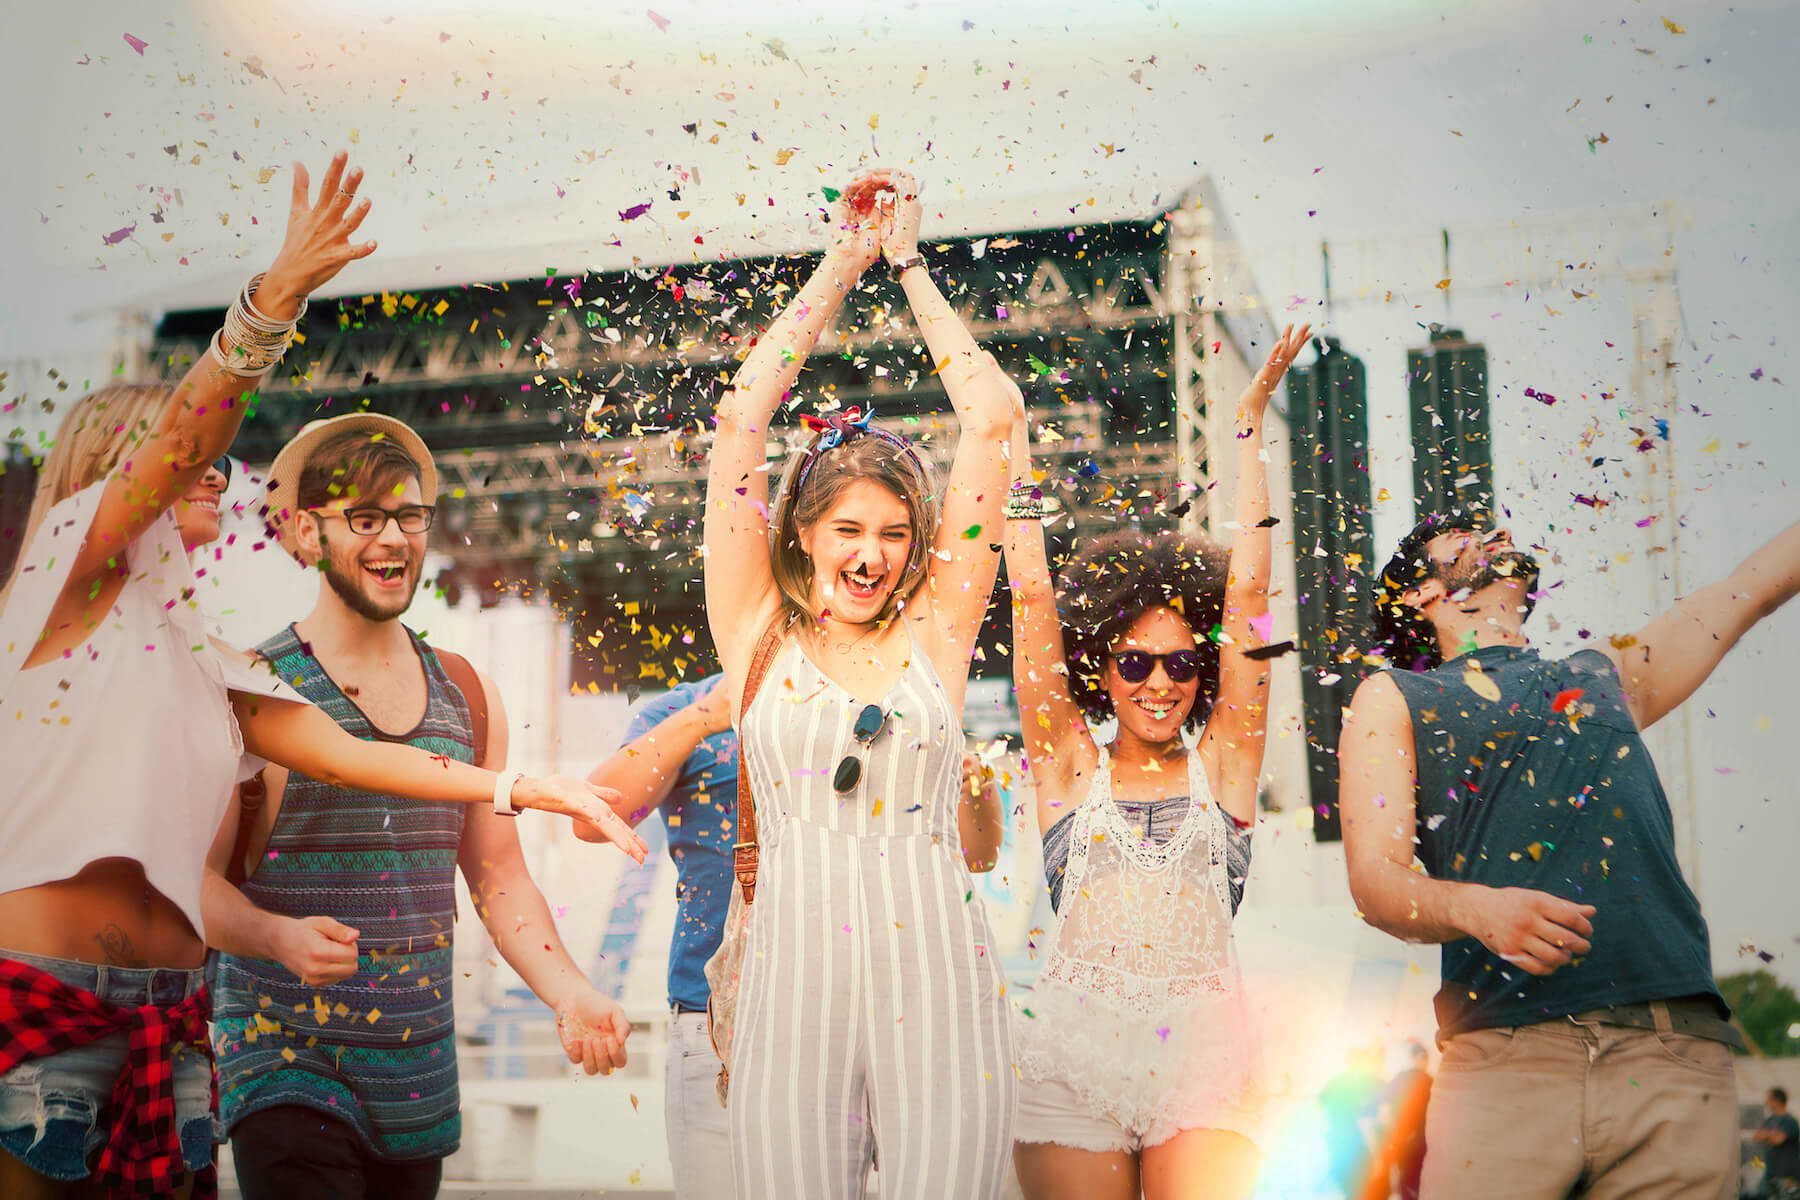 Group of friends celebrating festival event together with confetti